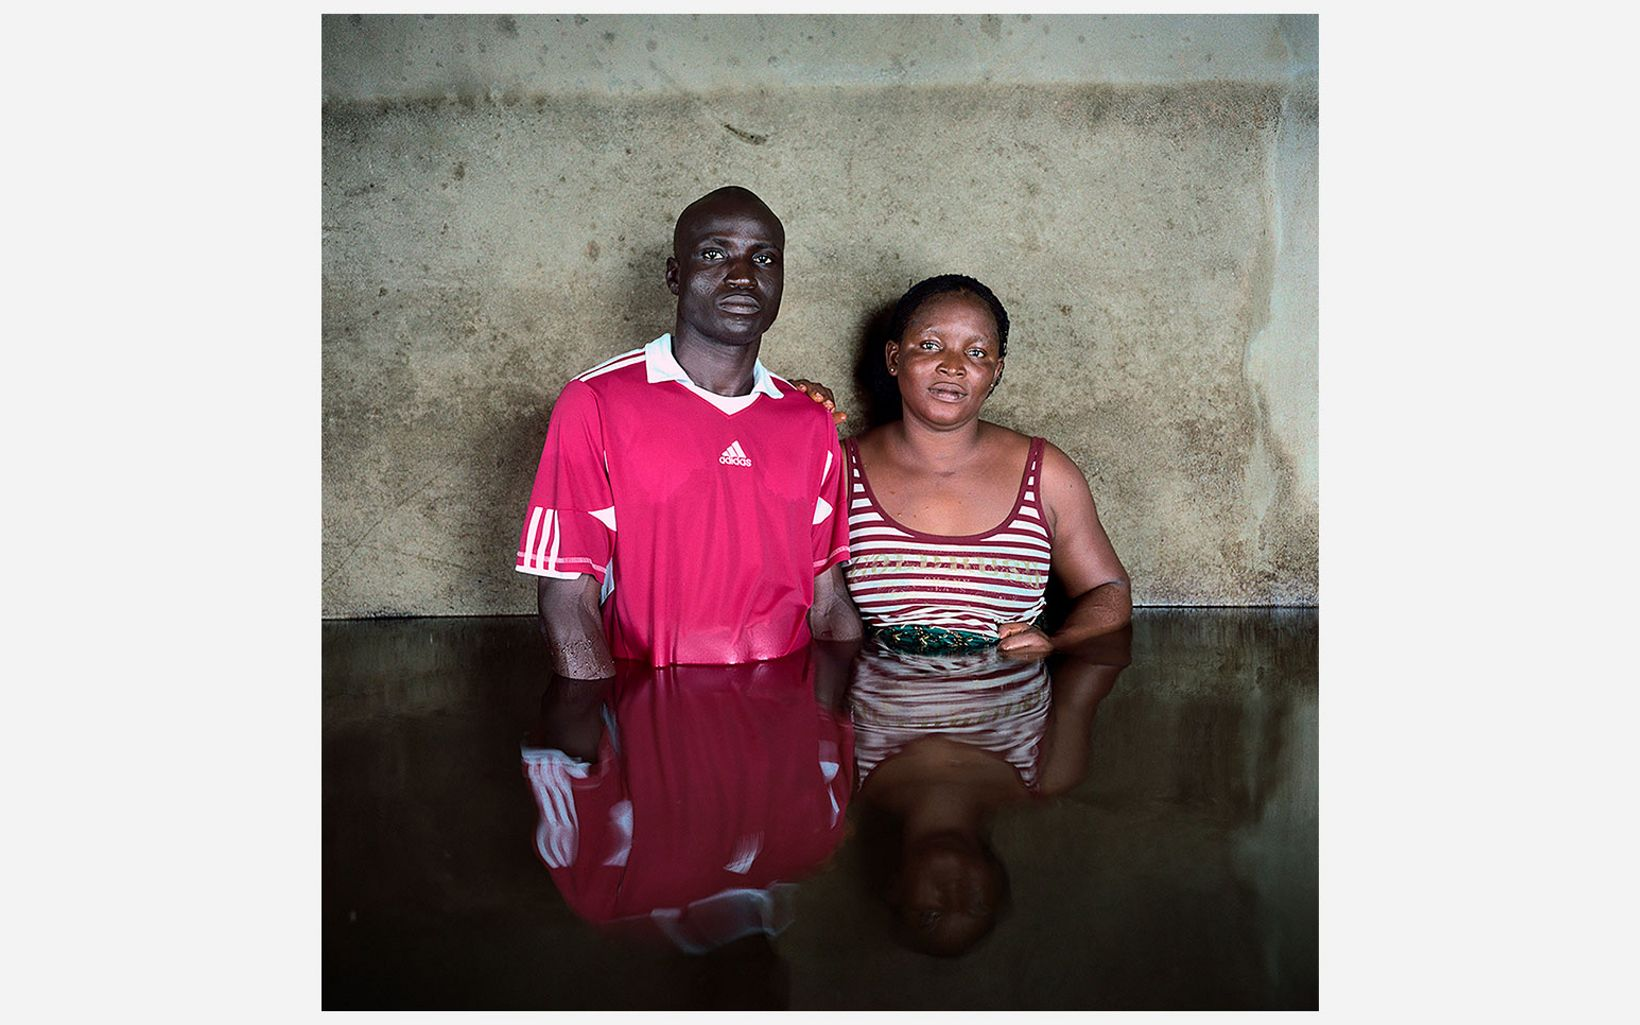 Kingsley Isiakpere and Edna Silas stand in waist deep water in the state of Bayelsa in Nigeria